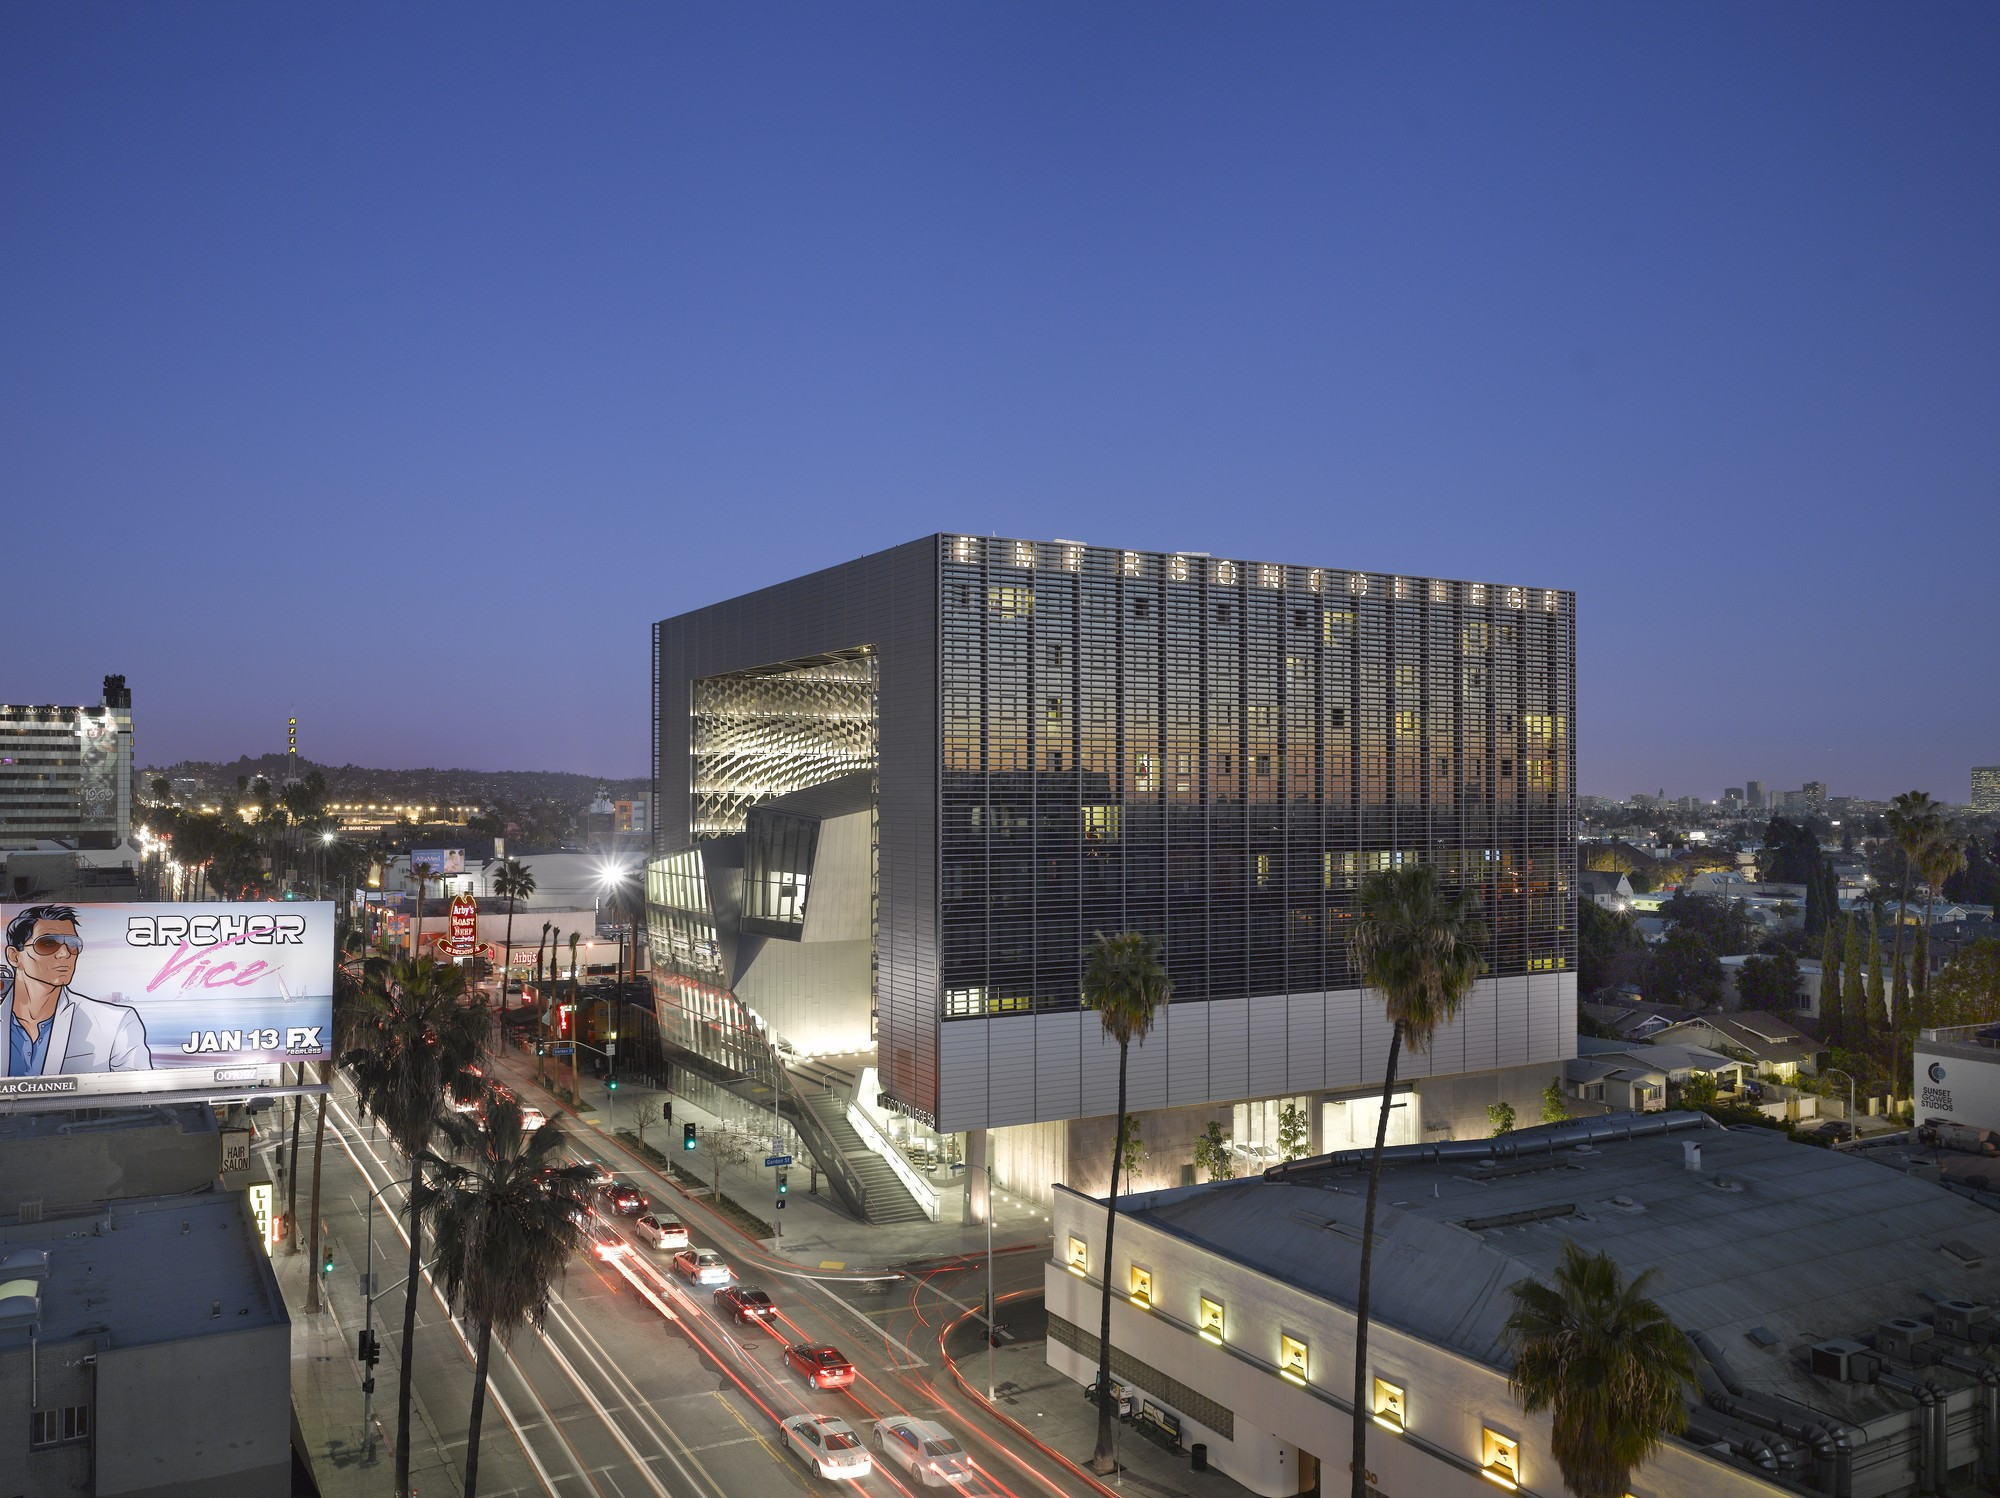 Emerson College Los Angeles © Roland Halbe